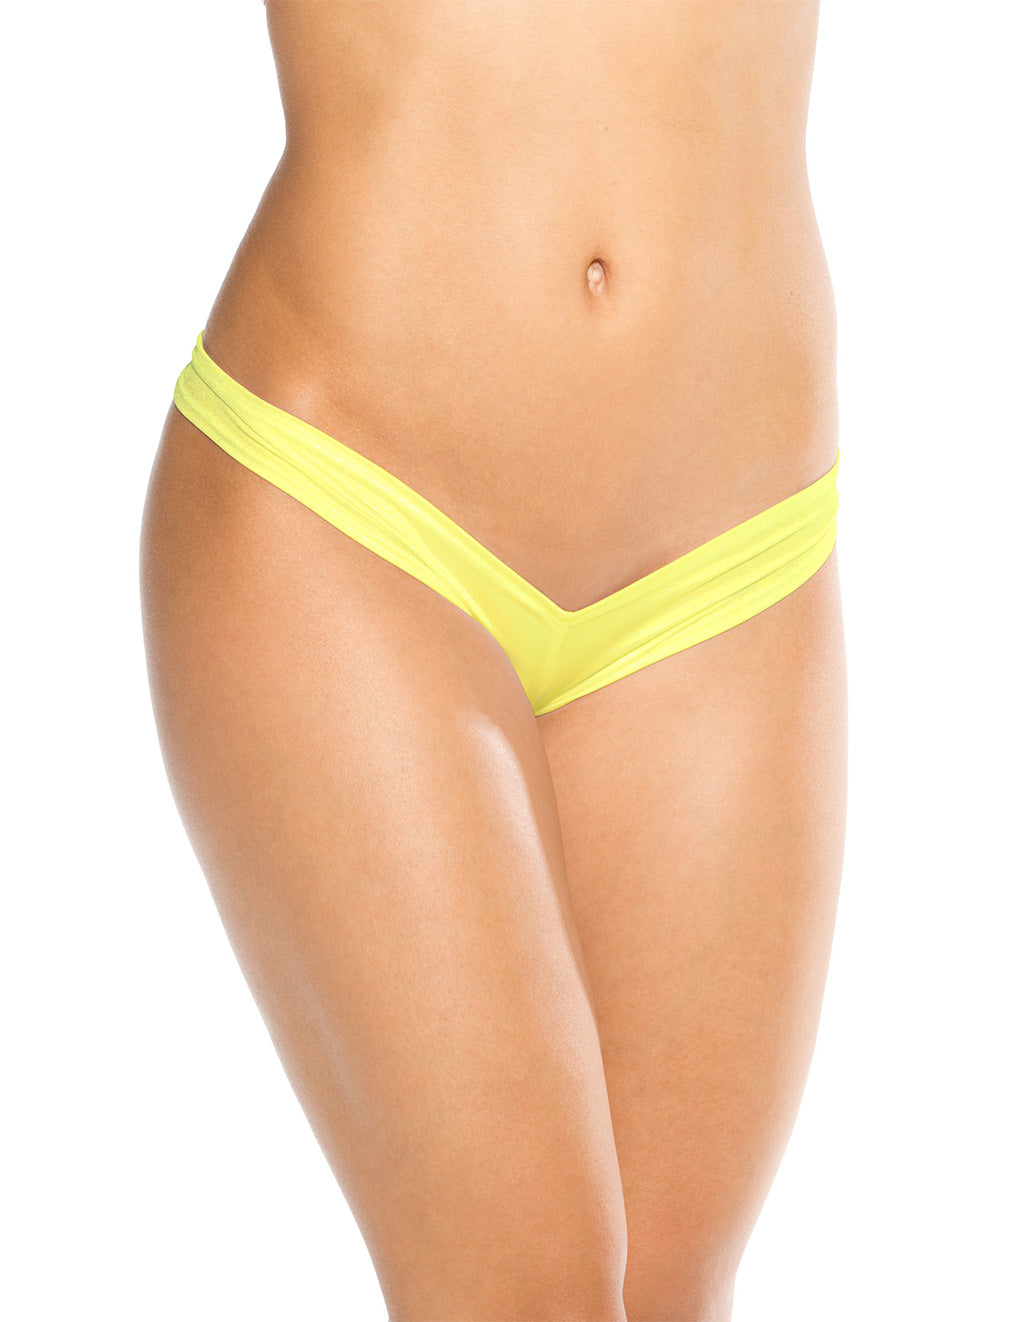 Bodyshotz Scrunch Back Boyshort Neon Yellow